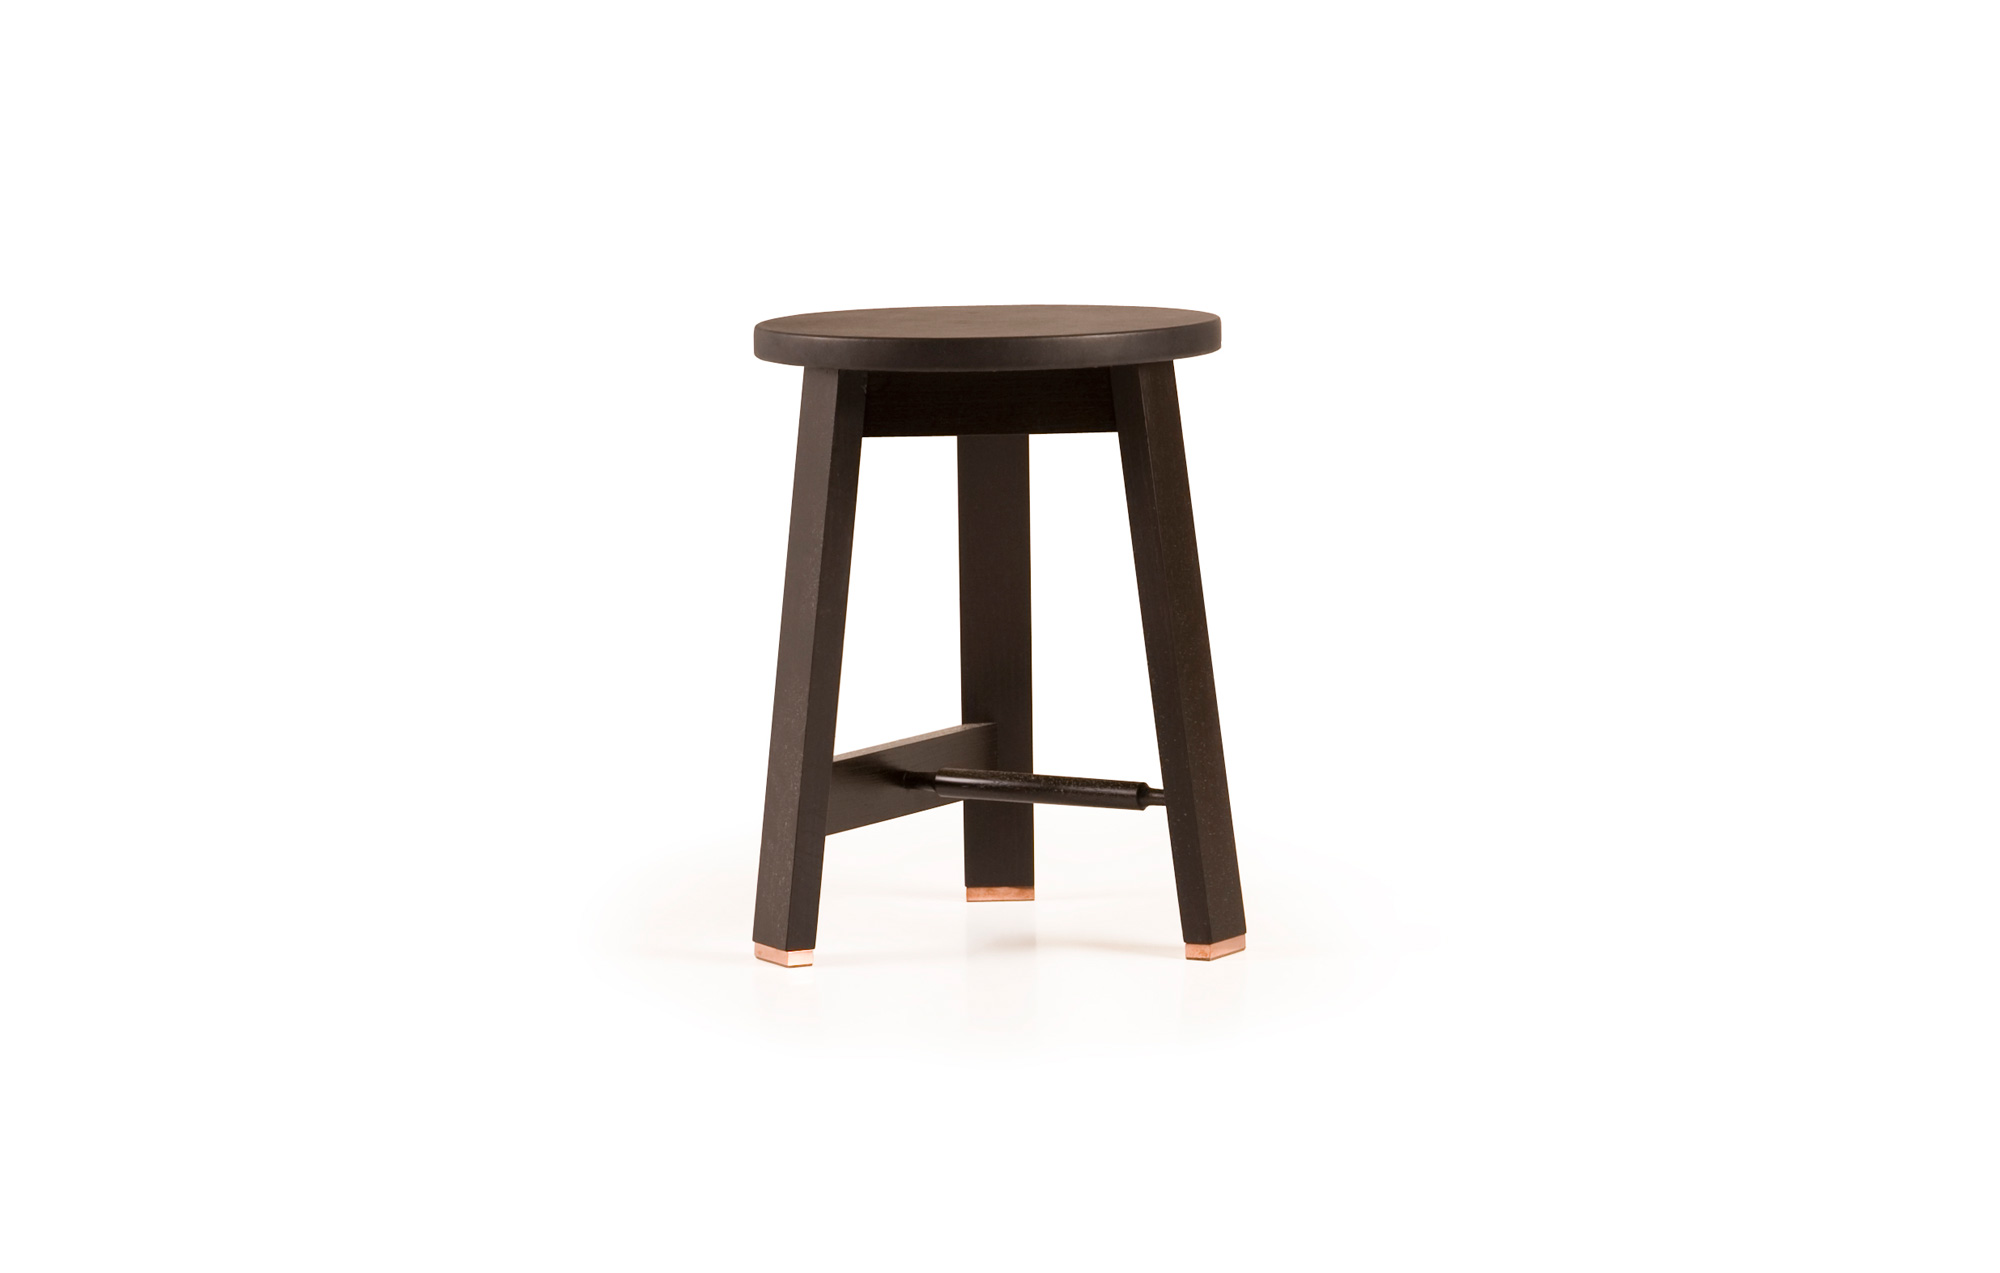 Hocker Stool-Classic Design-Hocker Holz